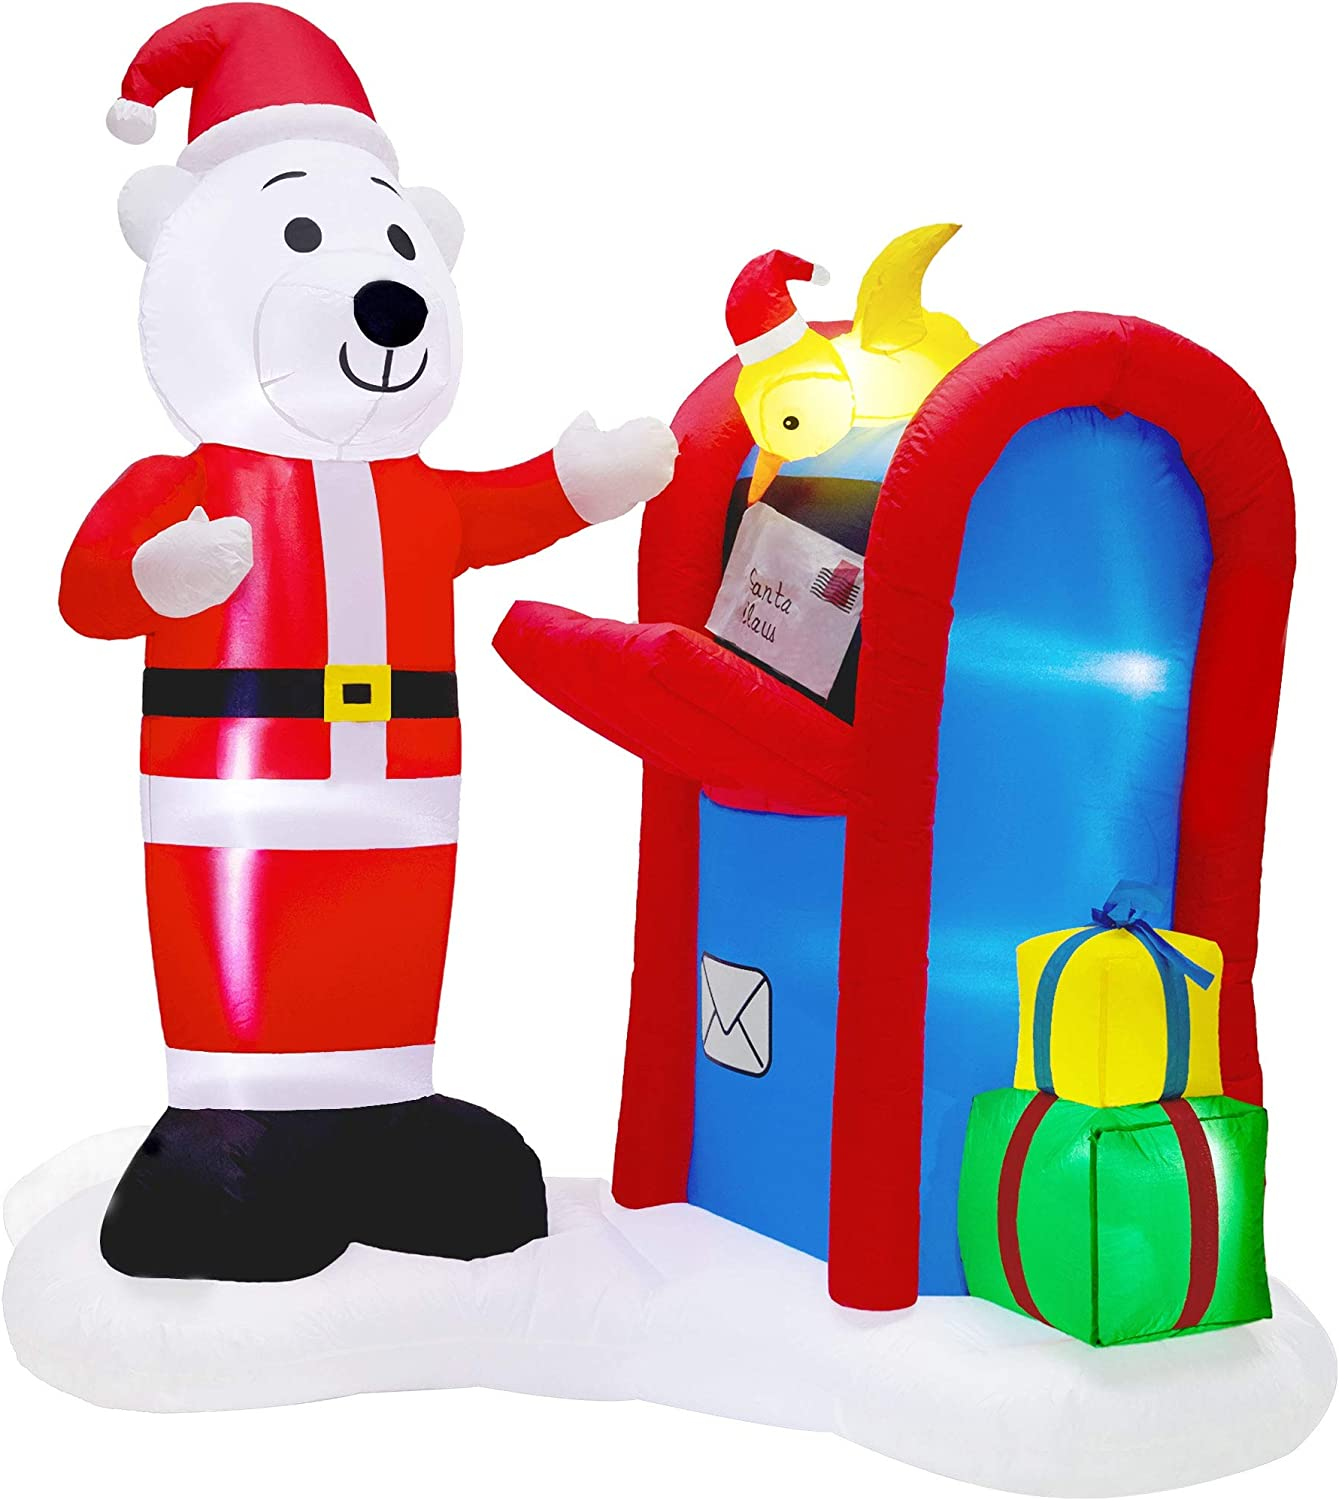 Twinkle Star 6FT Christmas Inflatables Decorations, Lighted Polar Bear Mailing Letter to Santa Scene, Mailbox Blow Up Indoor Outdoor Xmas Decor Lawn Yard Garden Decor